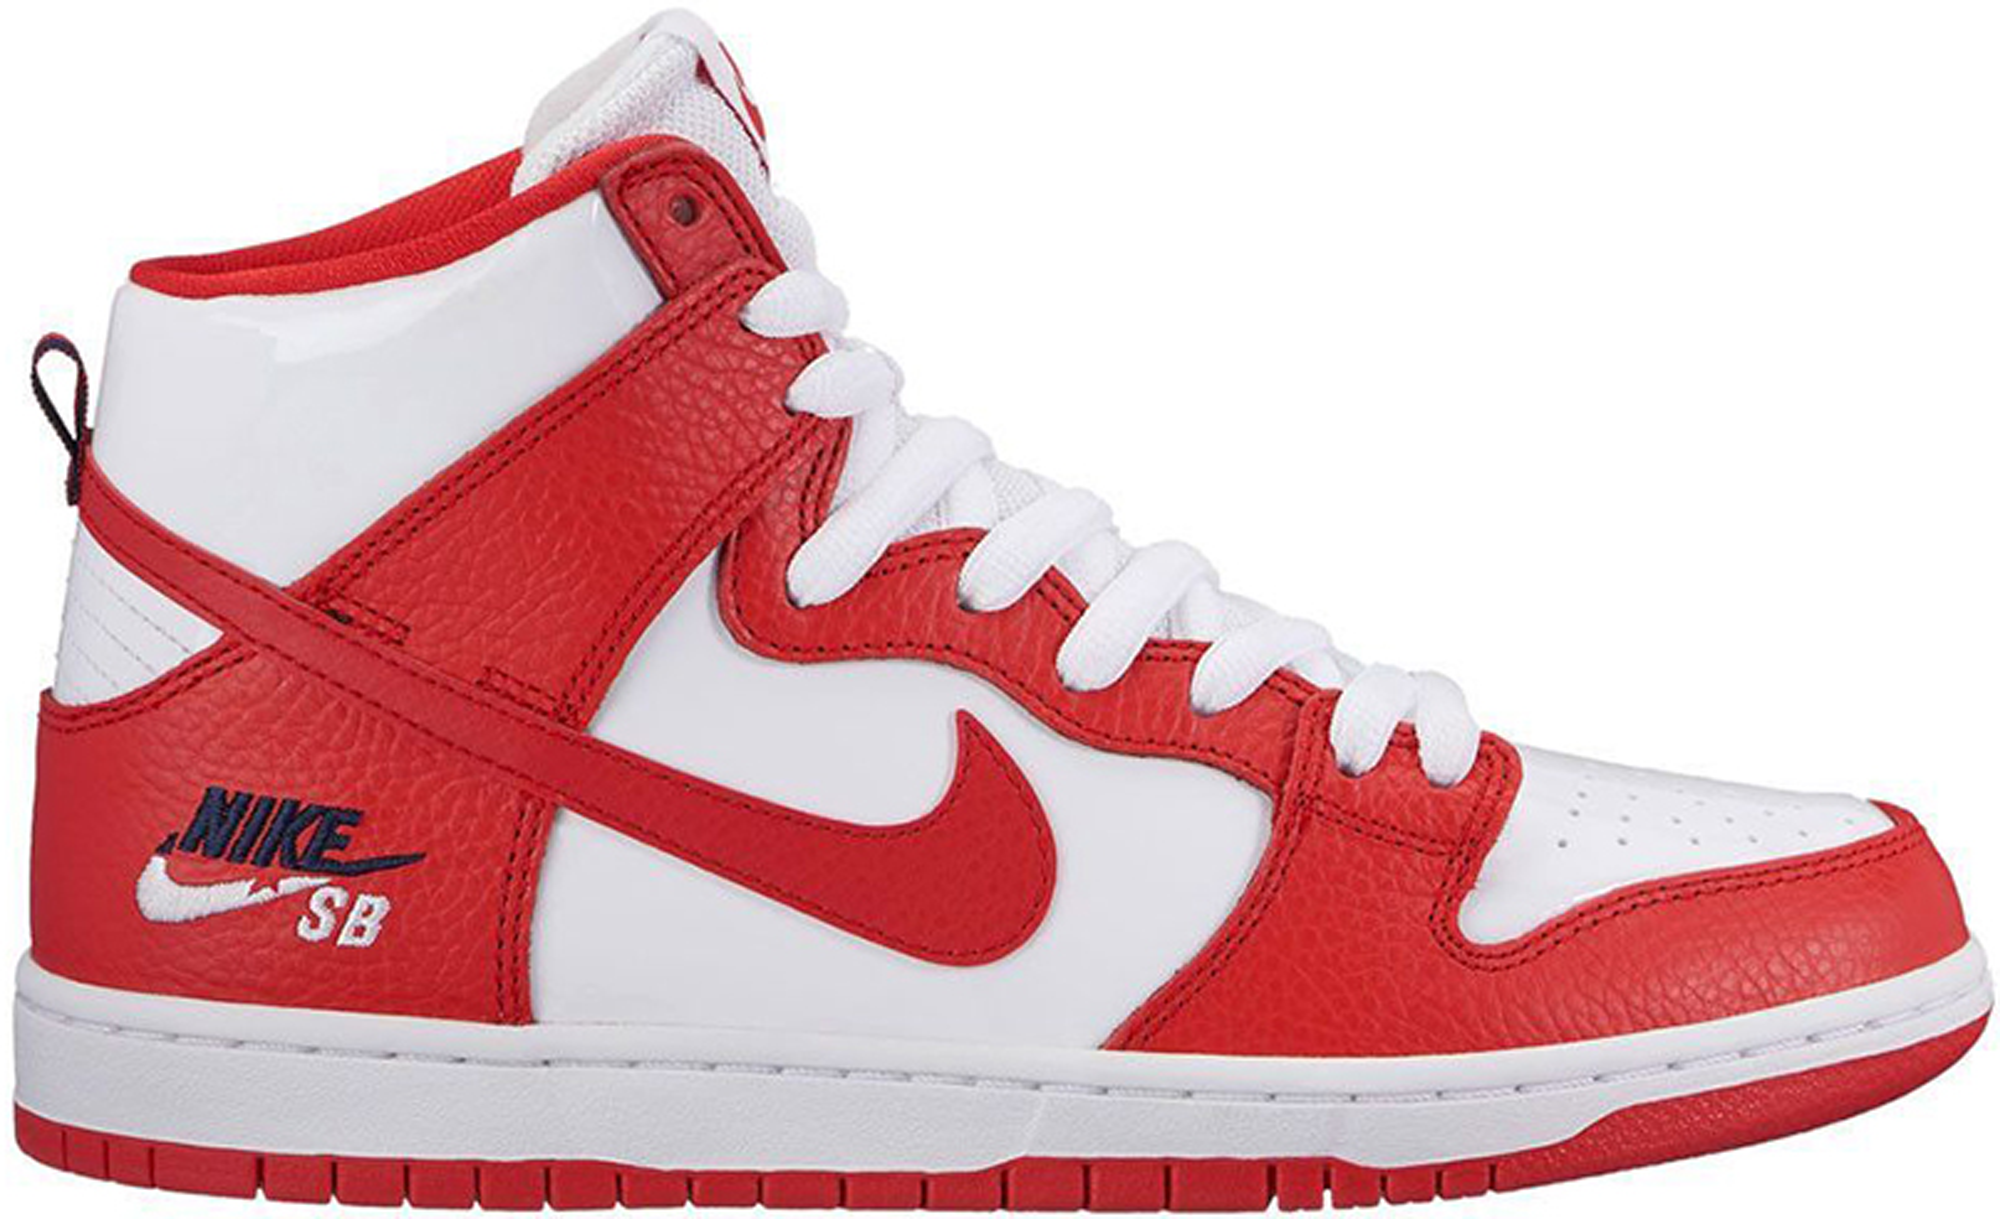 a91d7ca5 Nike SB Dunk High Pro Dream Team Red - StockX News